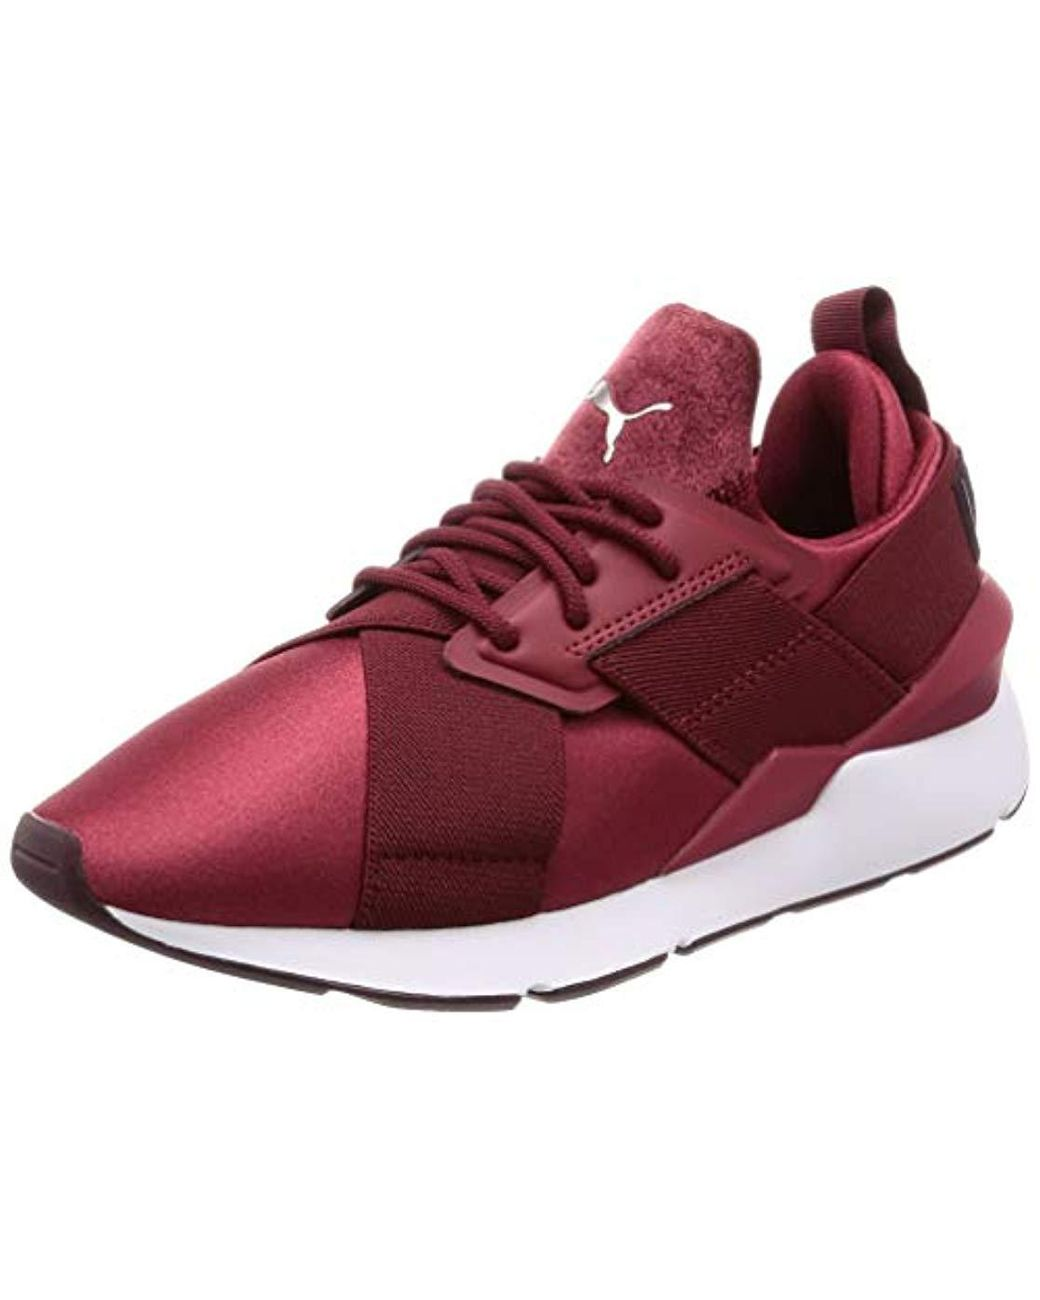 57193602c01e3 Women's Red Muse Satin Ep Wn's Low-top Trainers